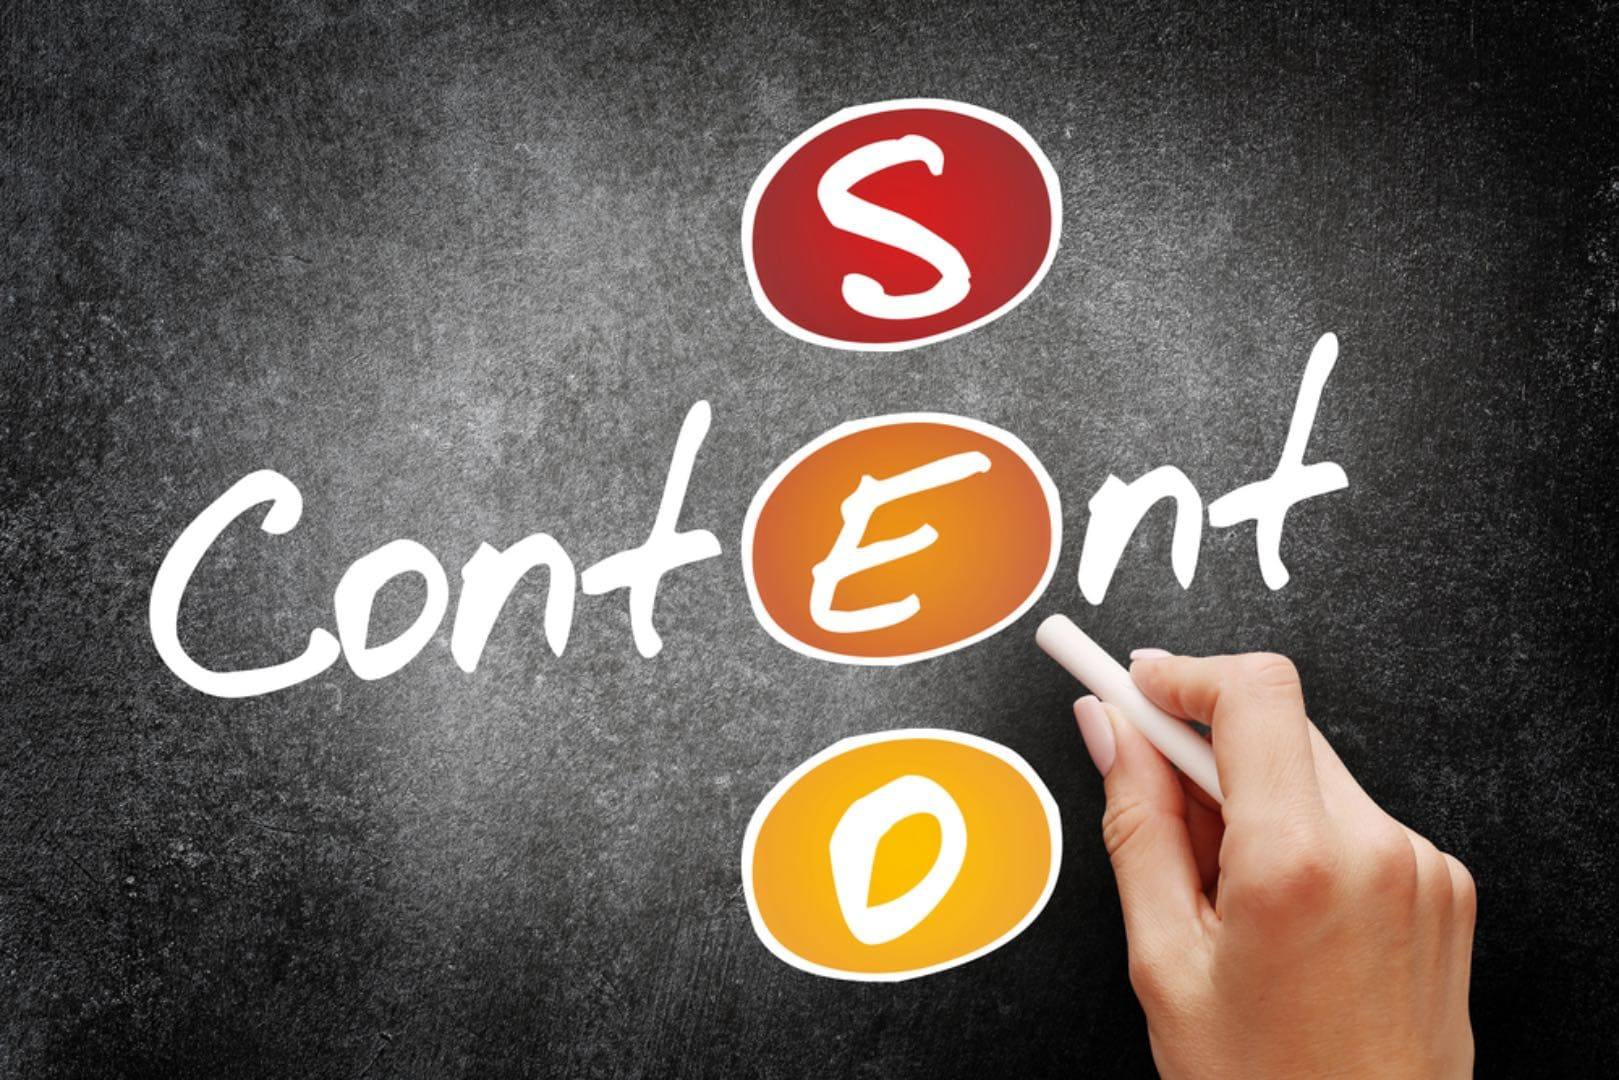 SEO and Content matter for strong digital marketing